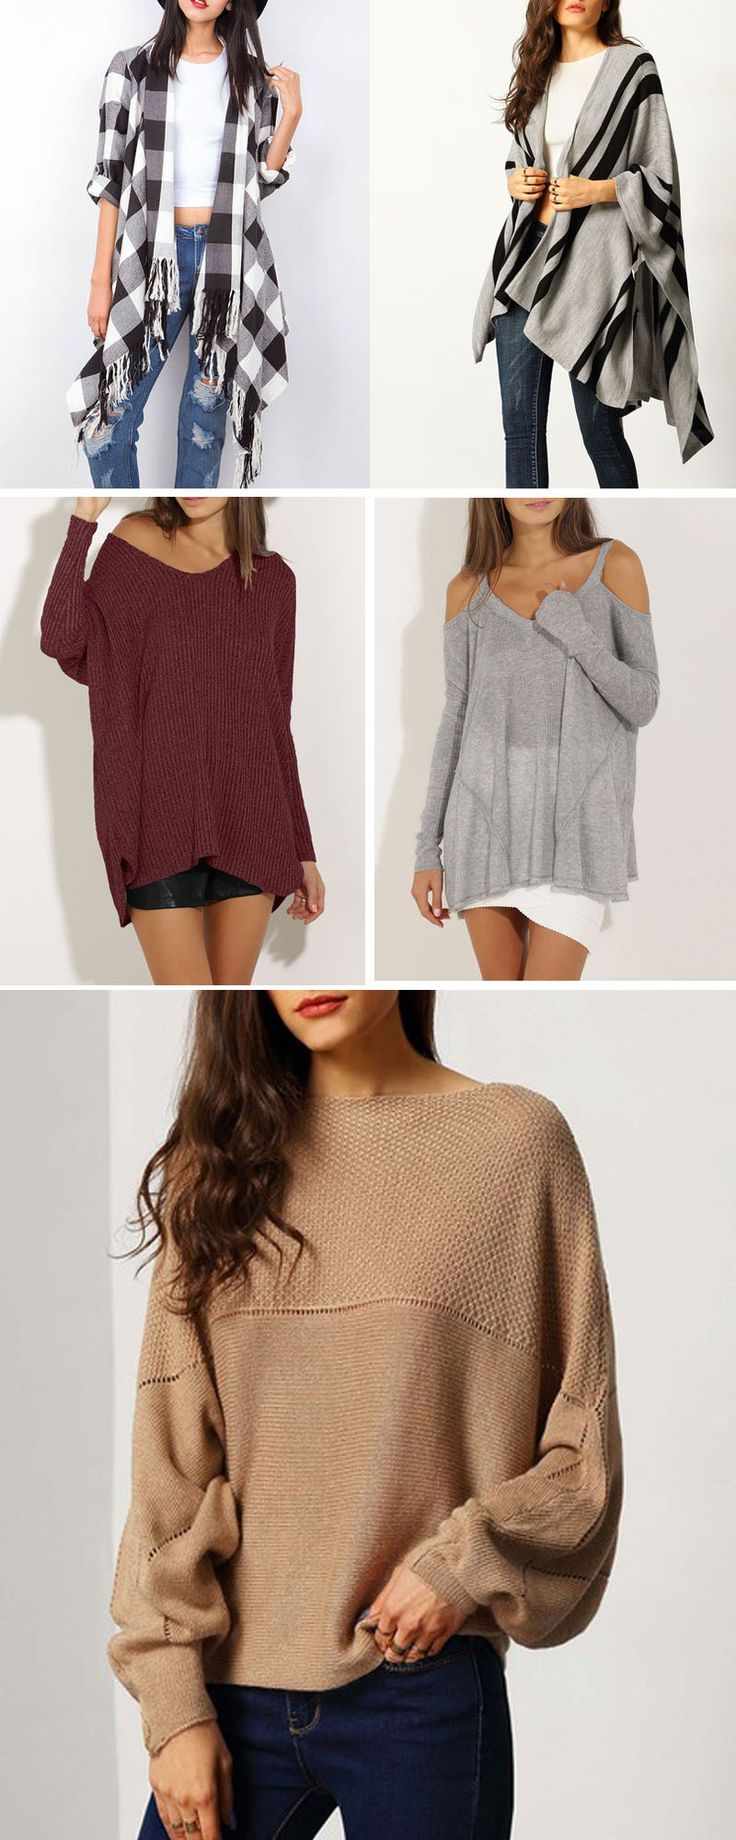 SheIn Stylist: love sweaters. Sweater !!!! Could be your new staple for late fall/winter/Spring